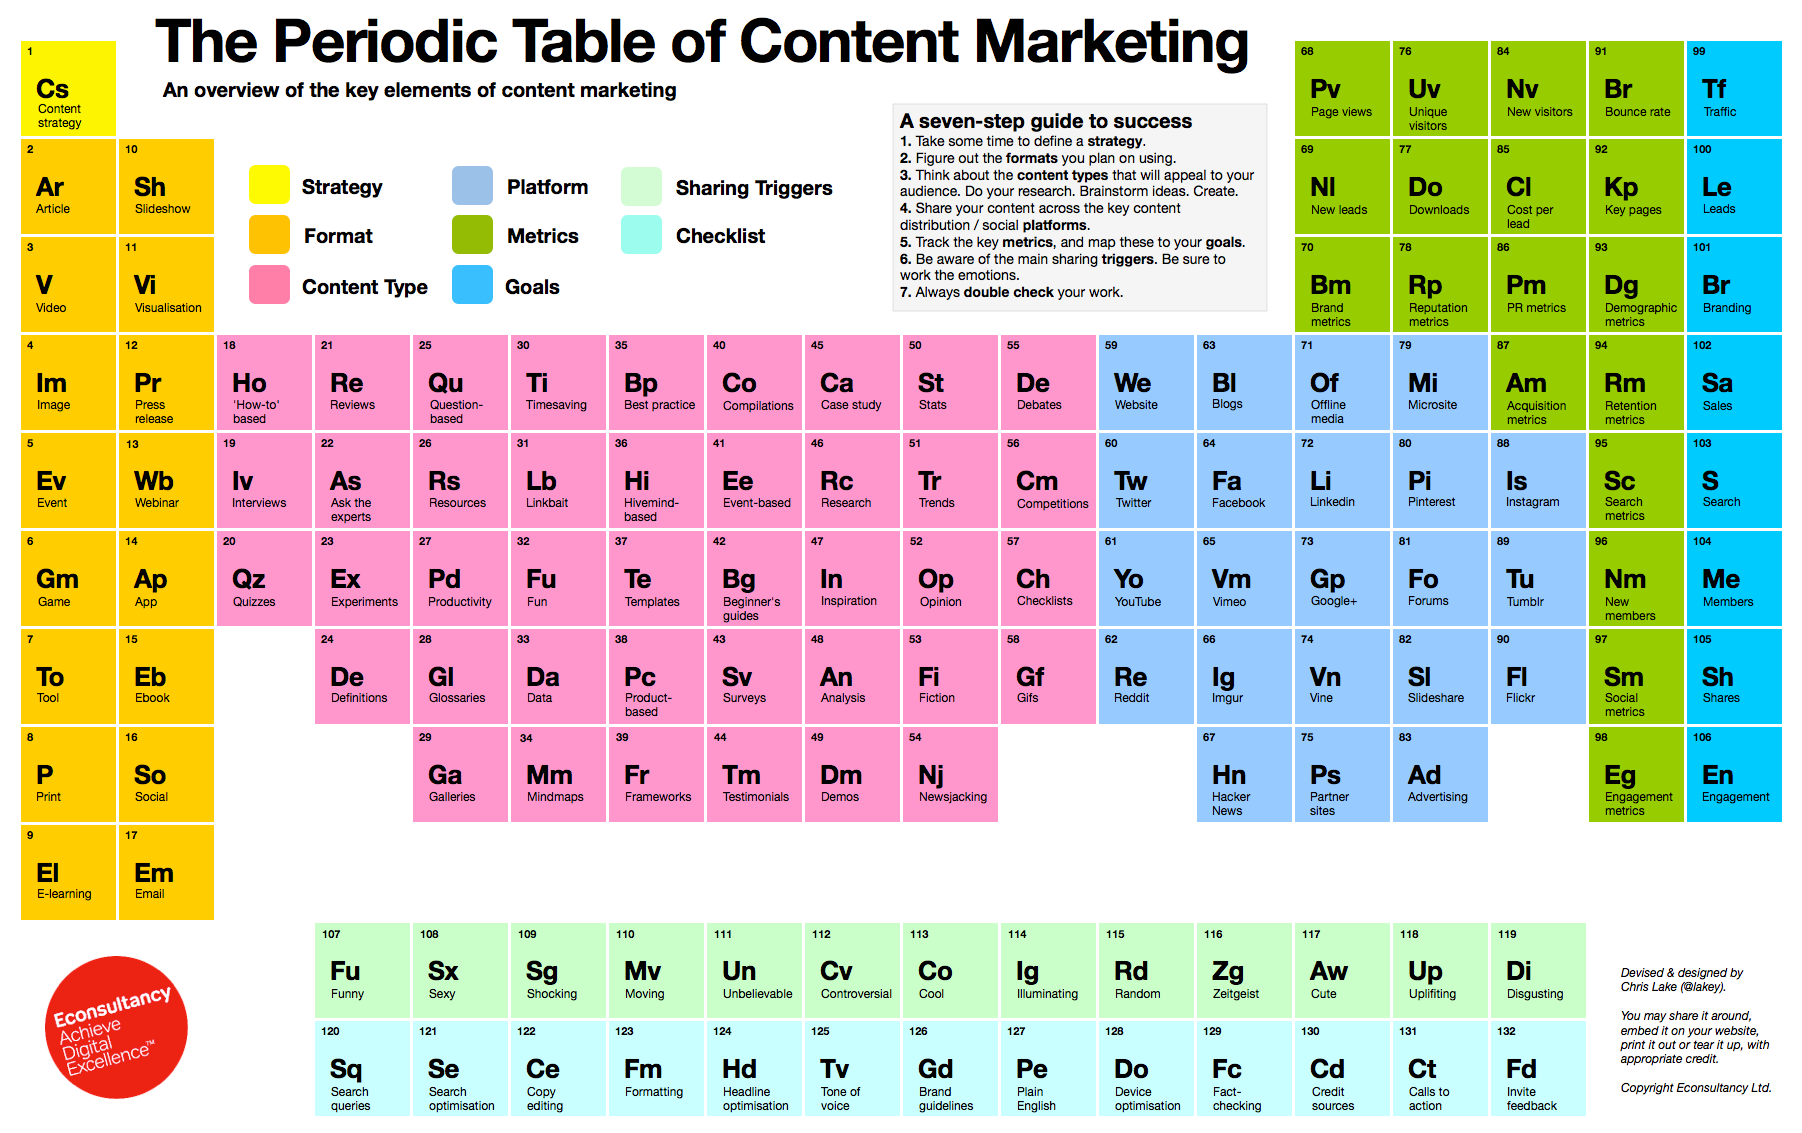 The Periodic Table of Content Marketing.